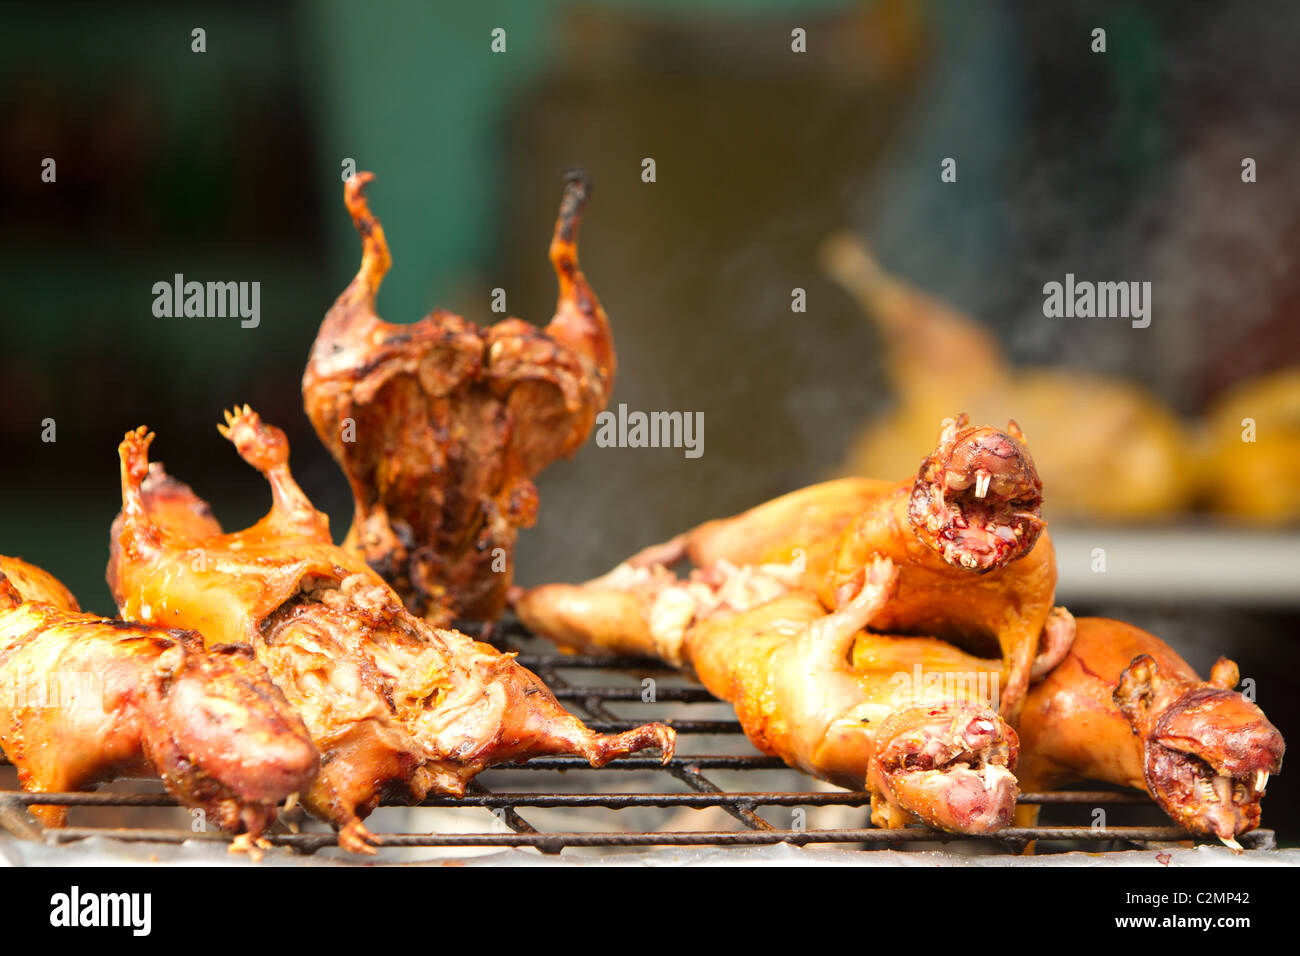 roasted guinea pig also called cui traditional food in ecuador stock